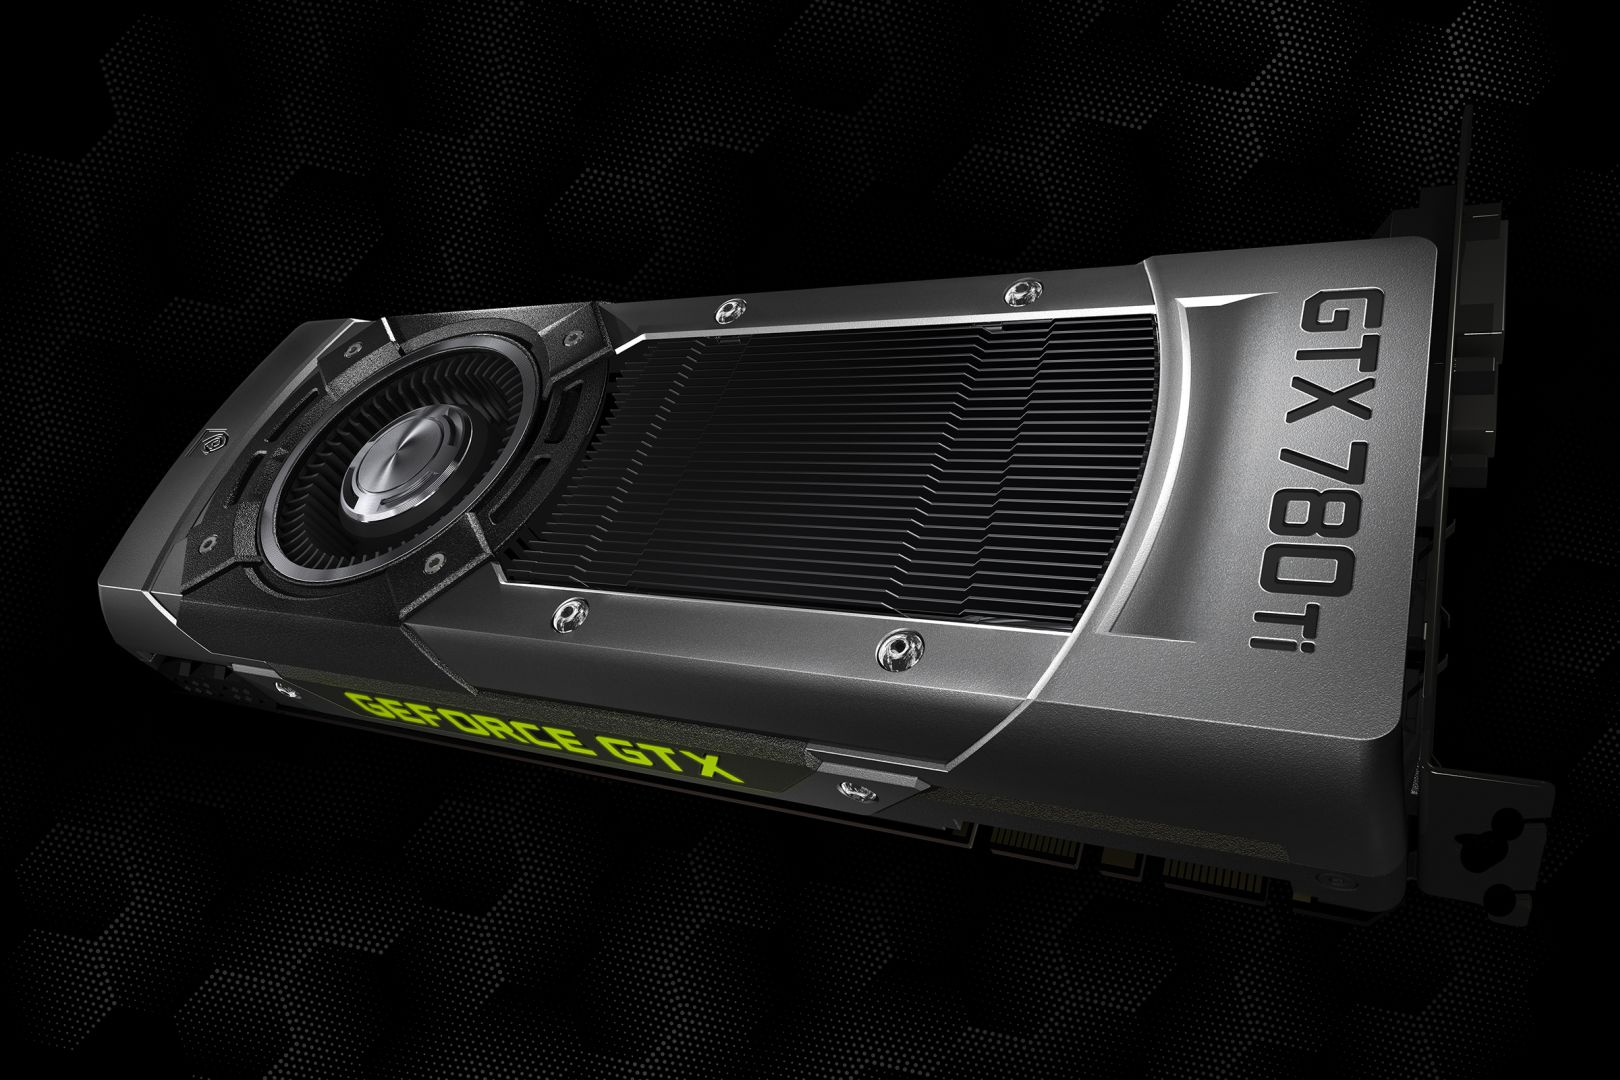 NVIDIA's GTX 780 Ti Speeds & Specs Leaked